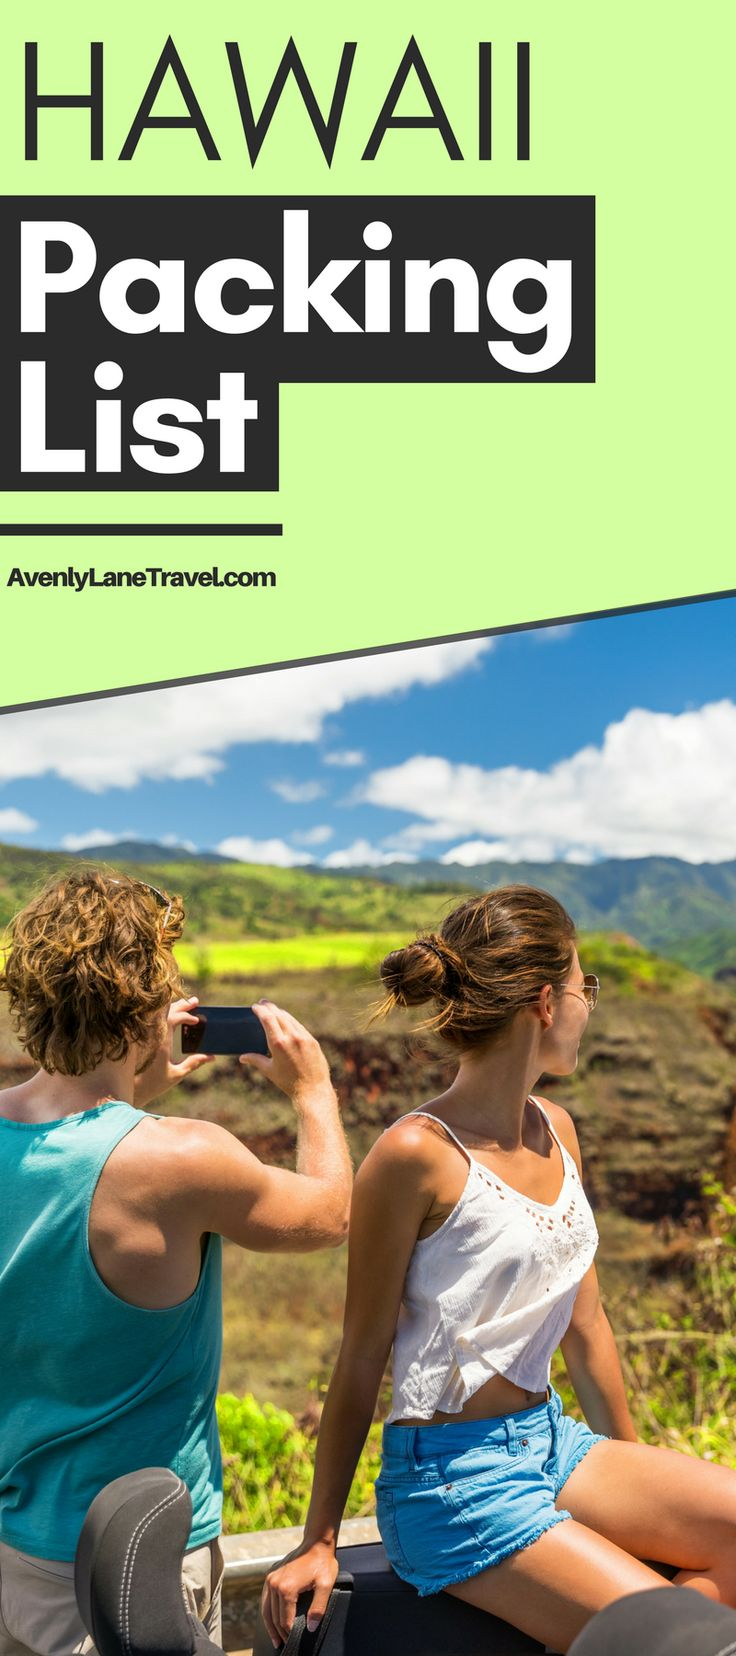 Are you planning a trip to Hawaii and not sure what to bring? This Hawaii packing list will help you get organized for your beach vacation. It covers the best Hawaii beach wear, outfits, shoes, dresses for Hawaii, electronics and so much more! Read the full article on Avenlylanetravel.com | #hawaii #Islands #packinglist #travel #beaches